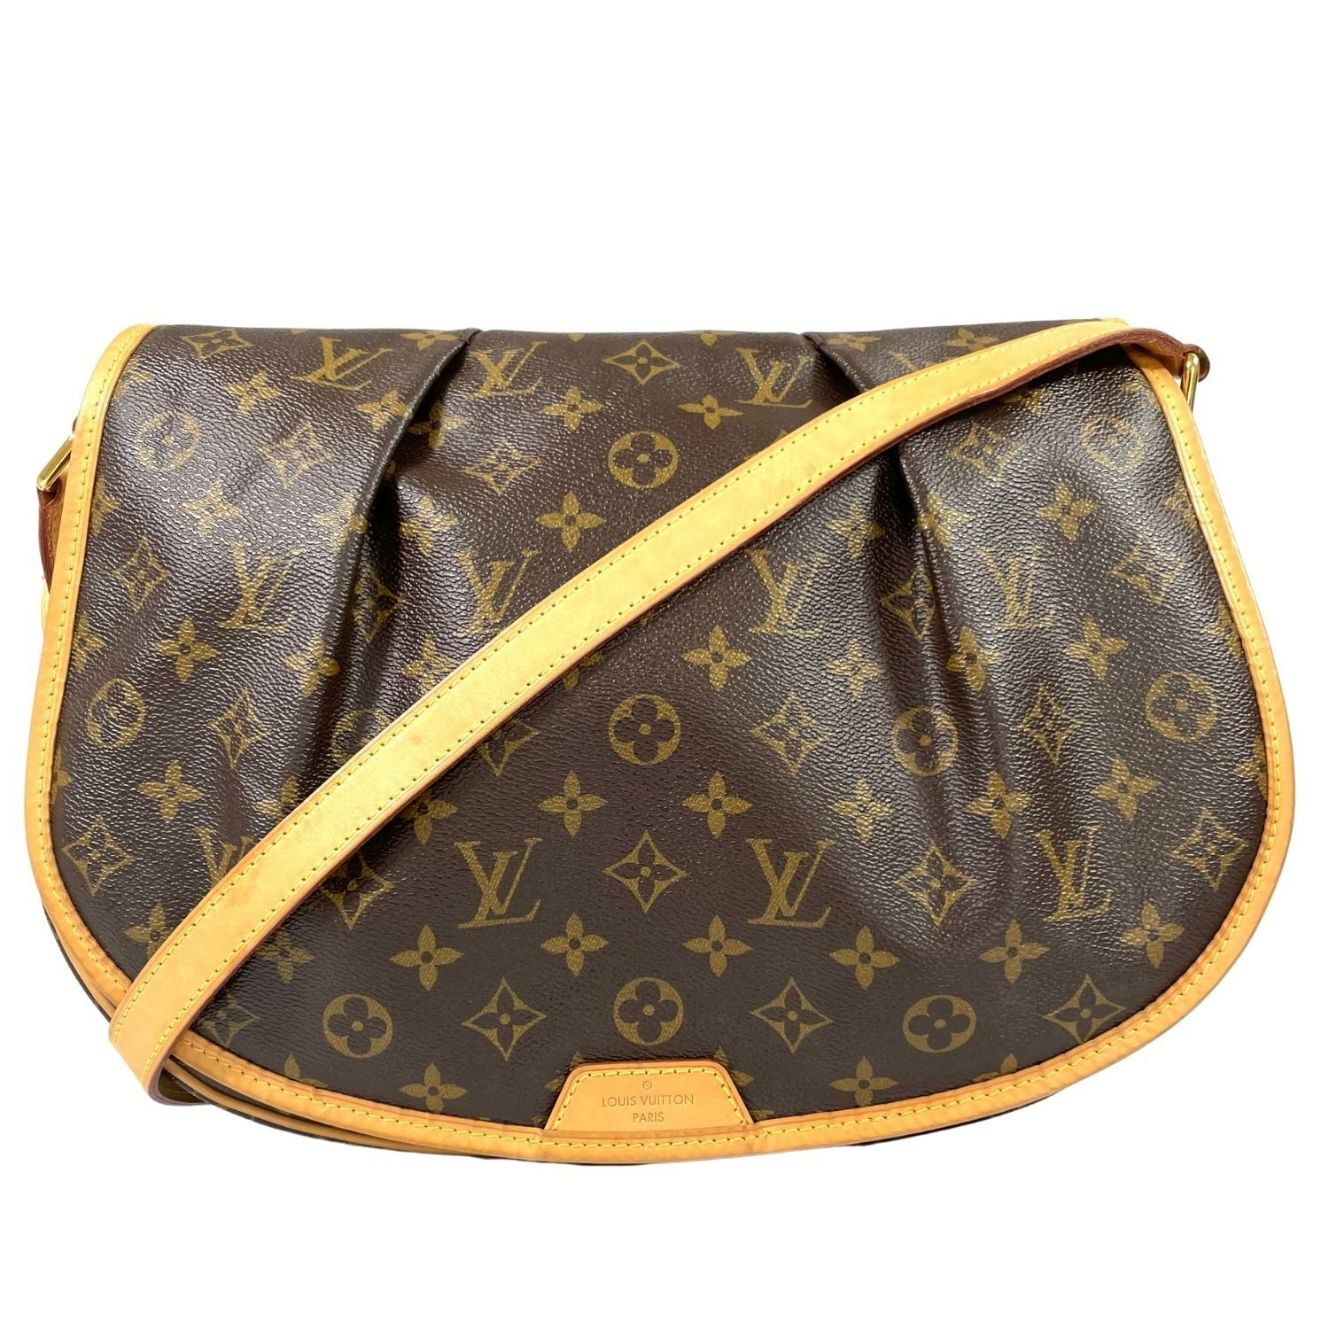 Bolsa Louis Vuitton Menilmontant MM Monograma